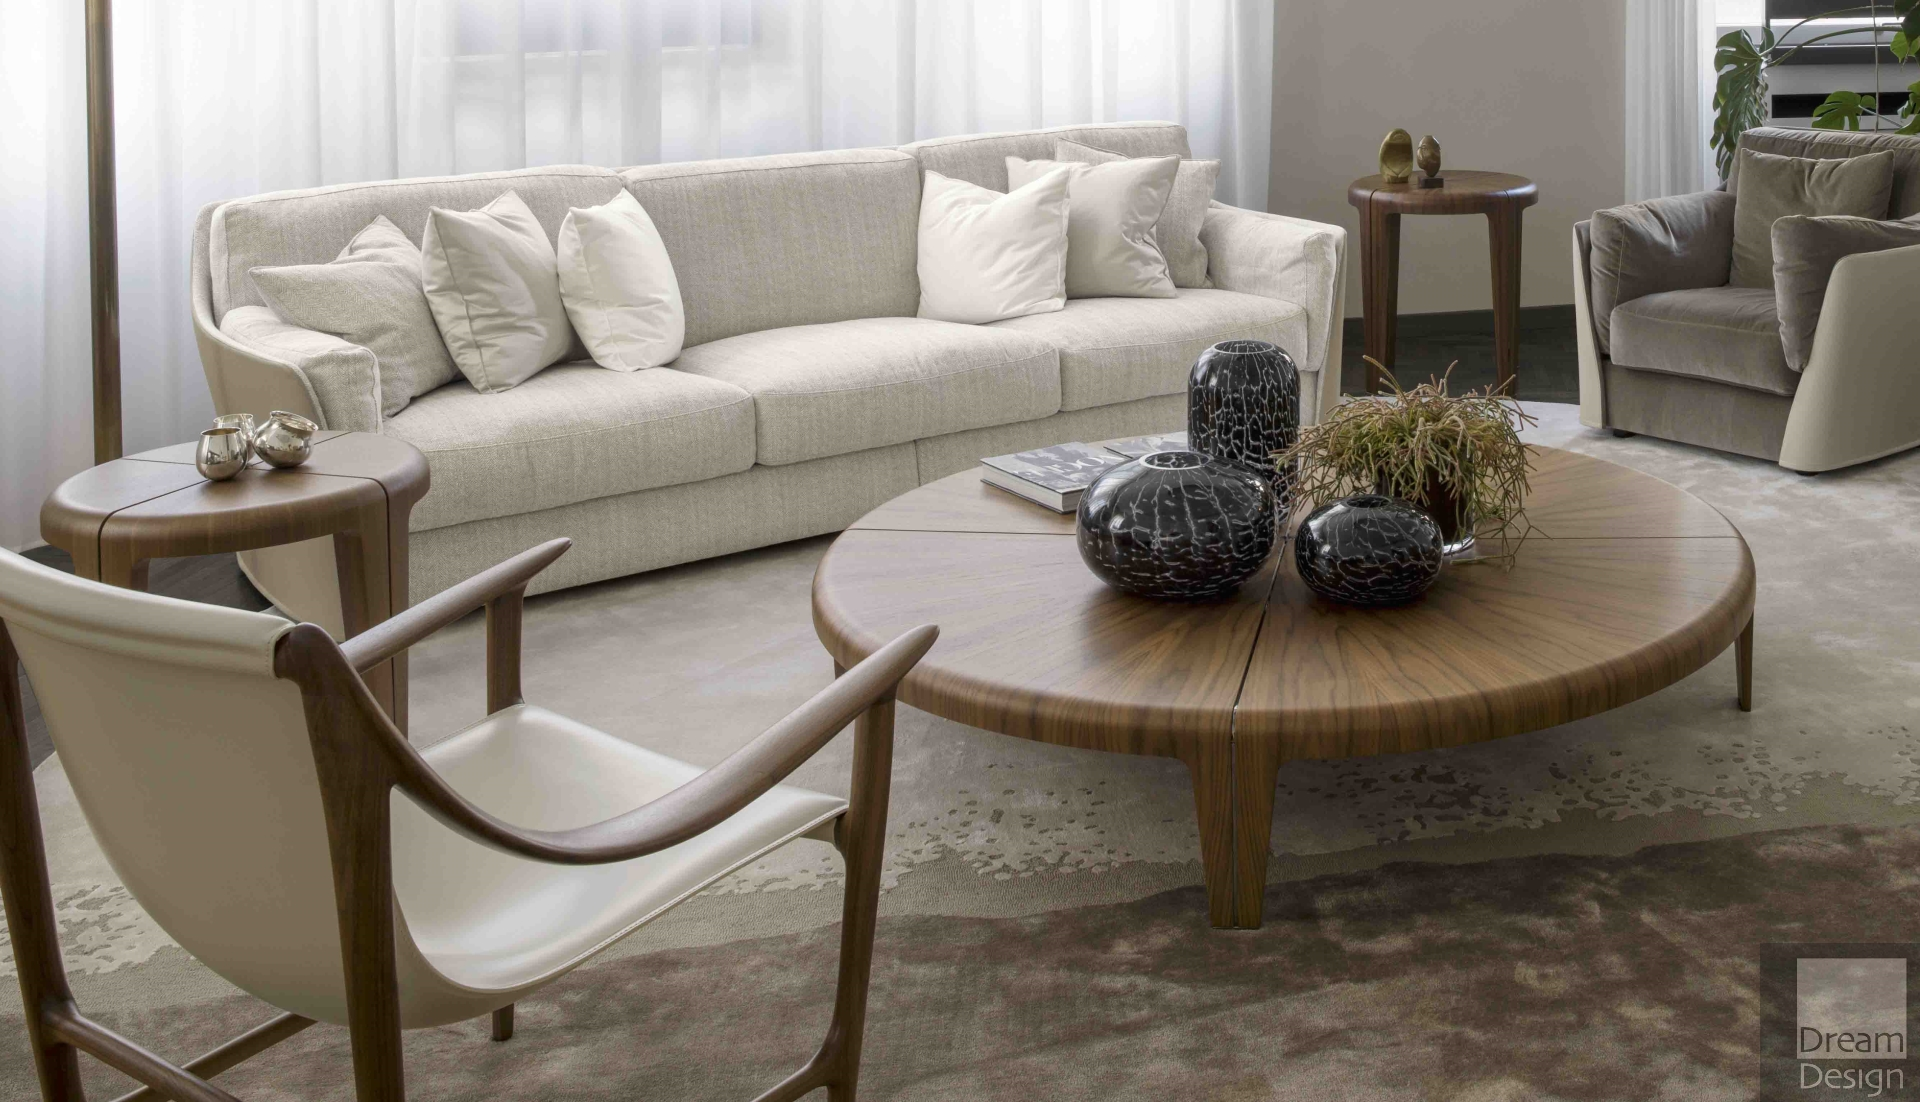 - Giorgetti Round Coffee Table By Carlo Colombo - Everything But